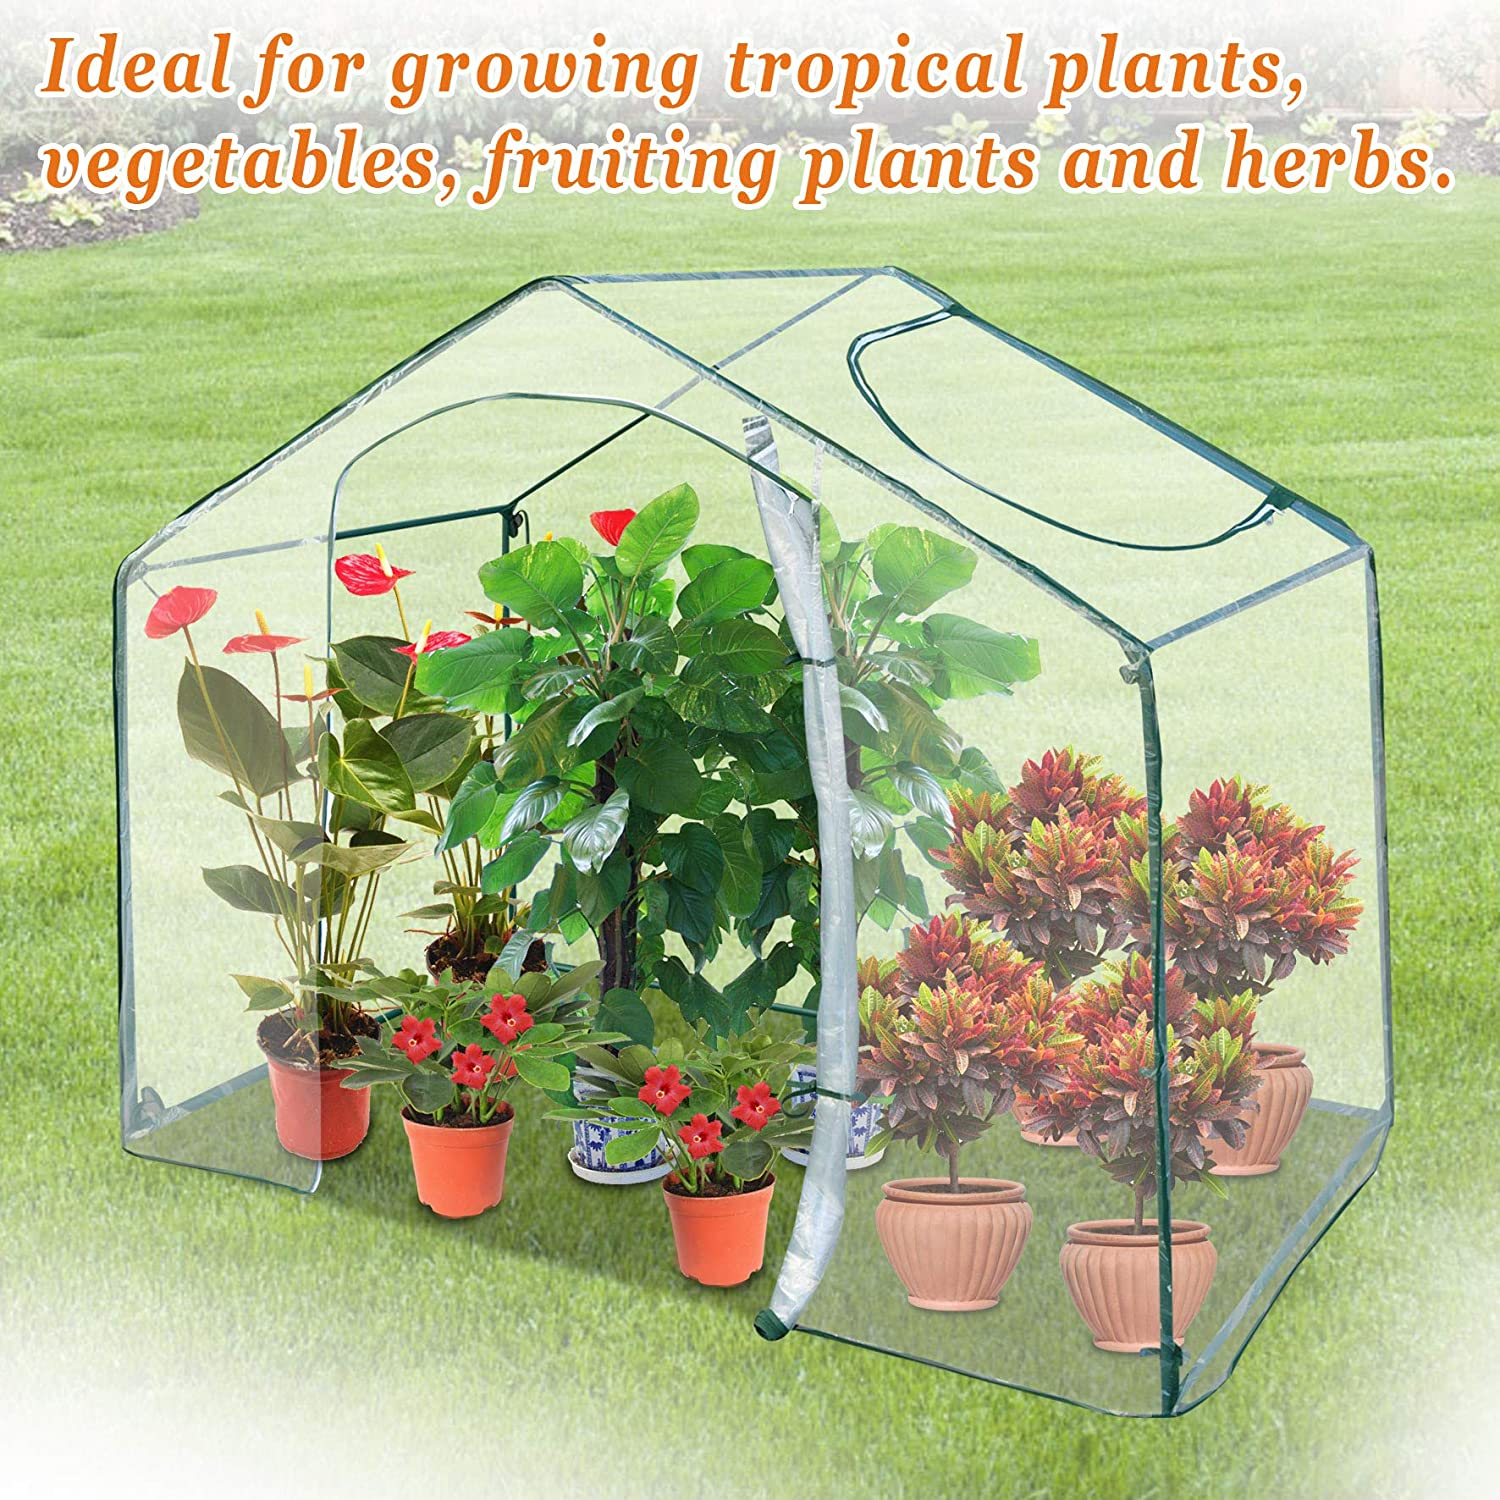 Strong Camel Small Walk-in Plants Greenhouse Plant Flower Garden Green Hous 5.9 x 3.5 x 5